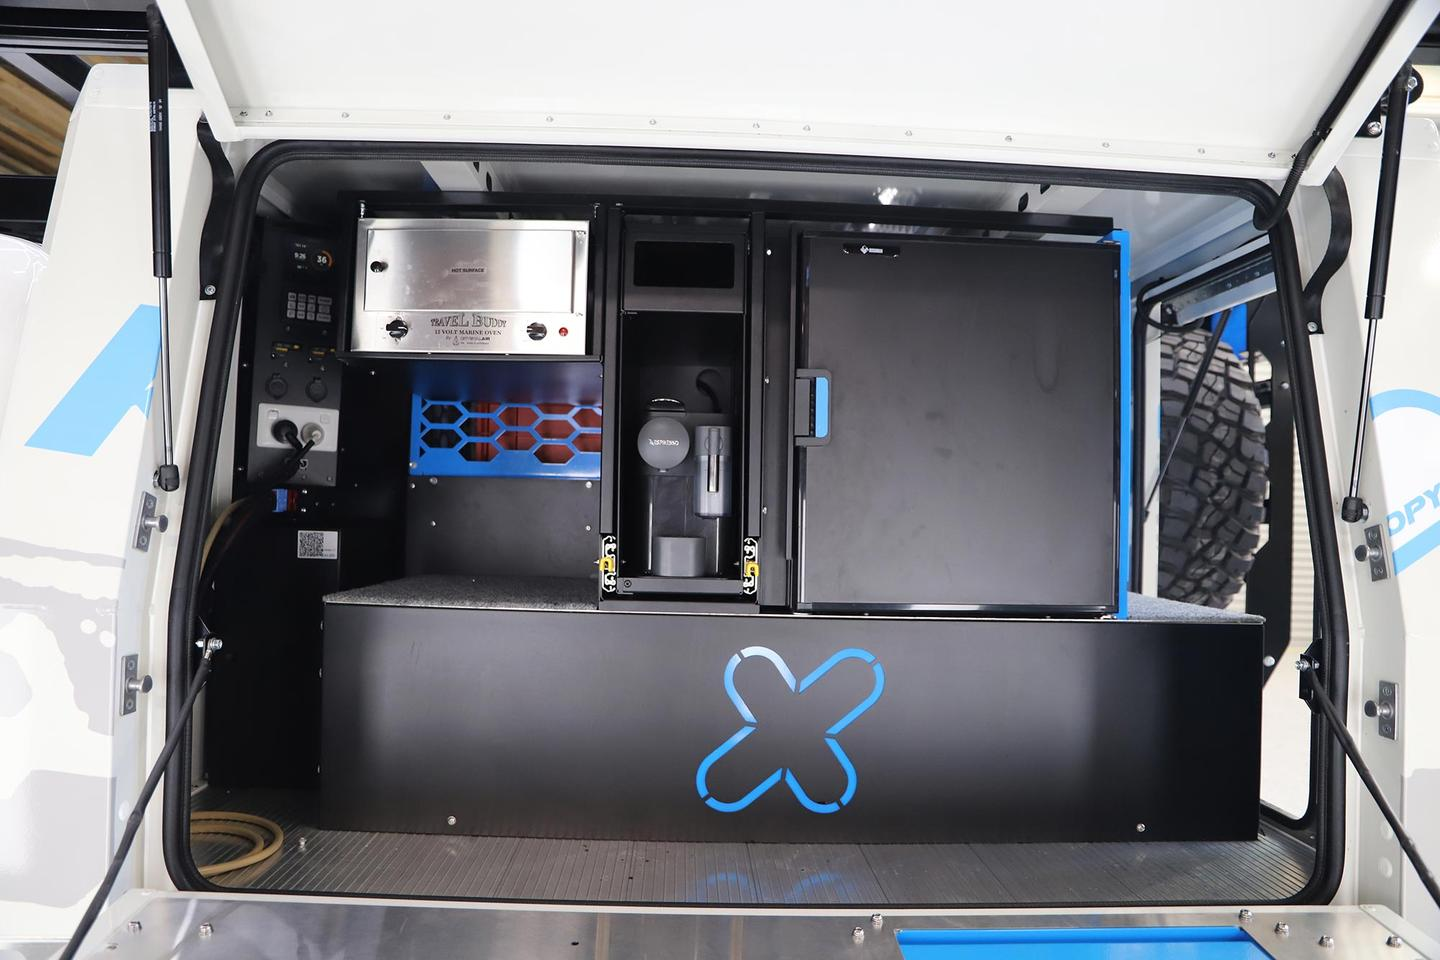 The passenger side of the canopy is dedicated to an available kitchen area with fridge/freezer on the right, coffeemaker in the center, electric oven top left/center, and electrical hardware on the left